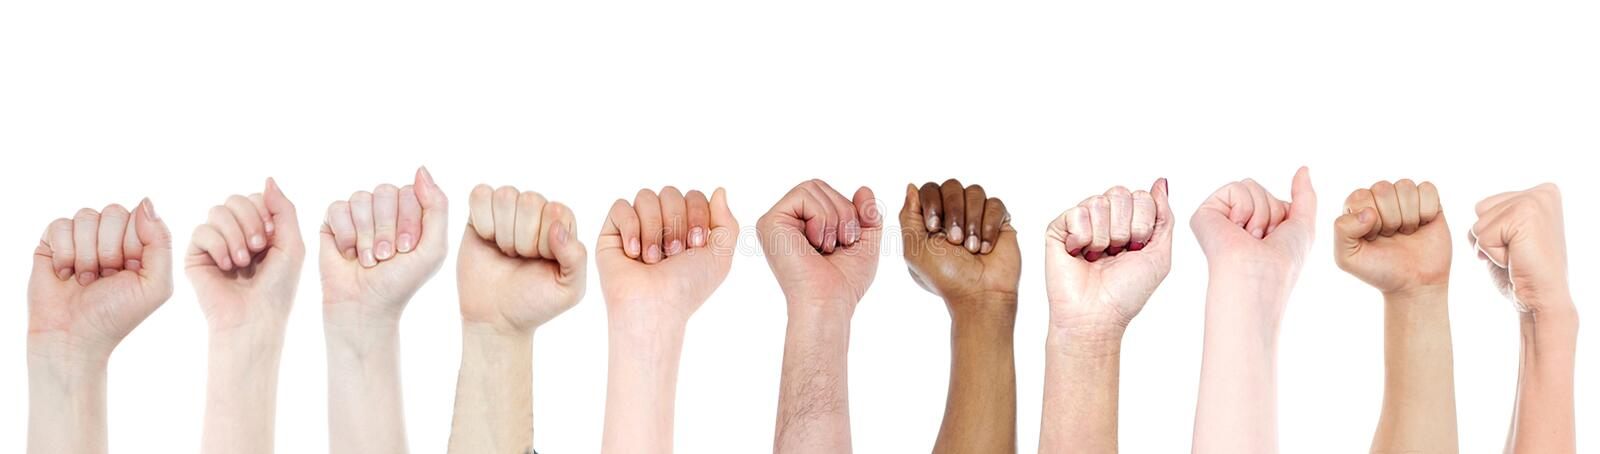 Isolated fists for protest, support concepts stock photography